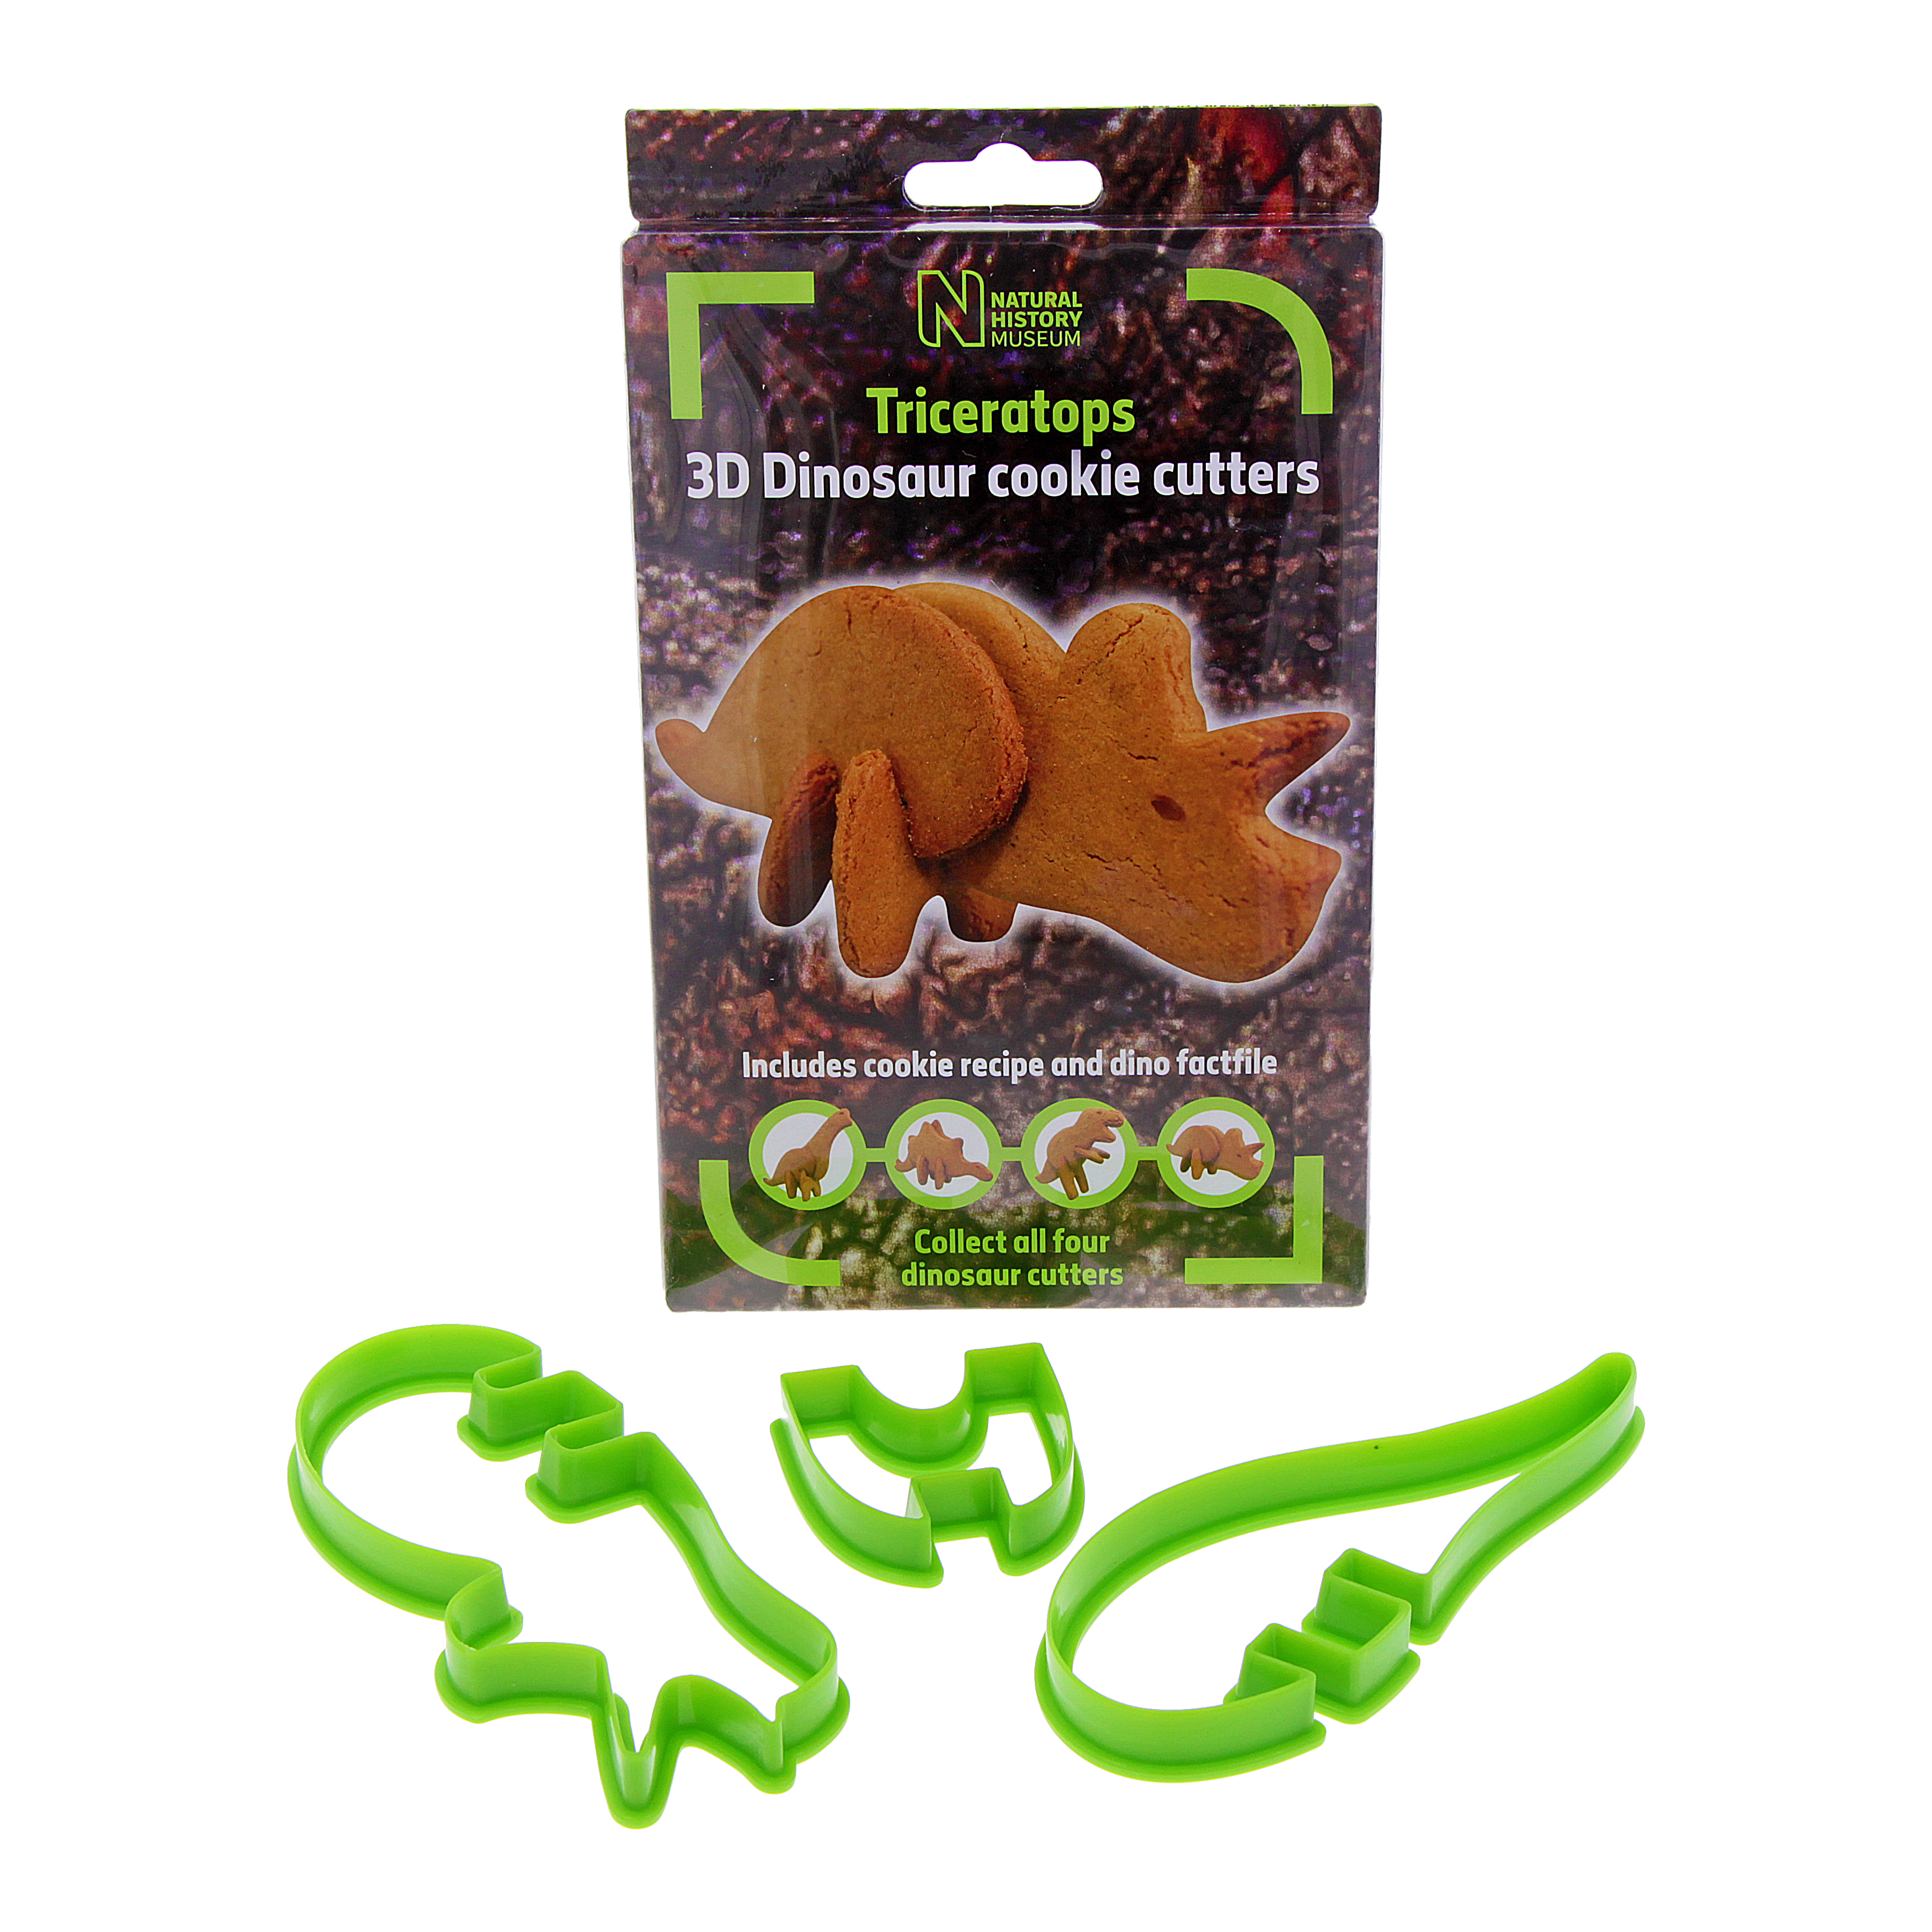 3D Dinosaur Cookie Cutter Triceratops Natural History Museum